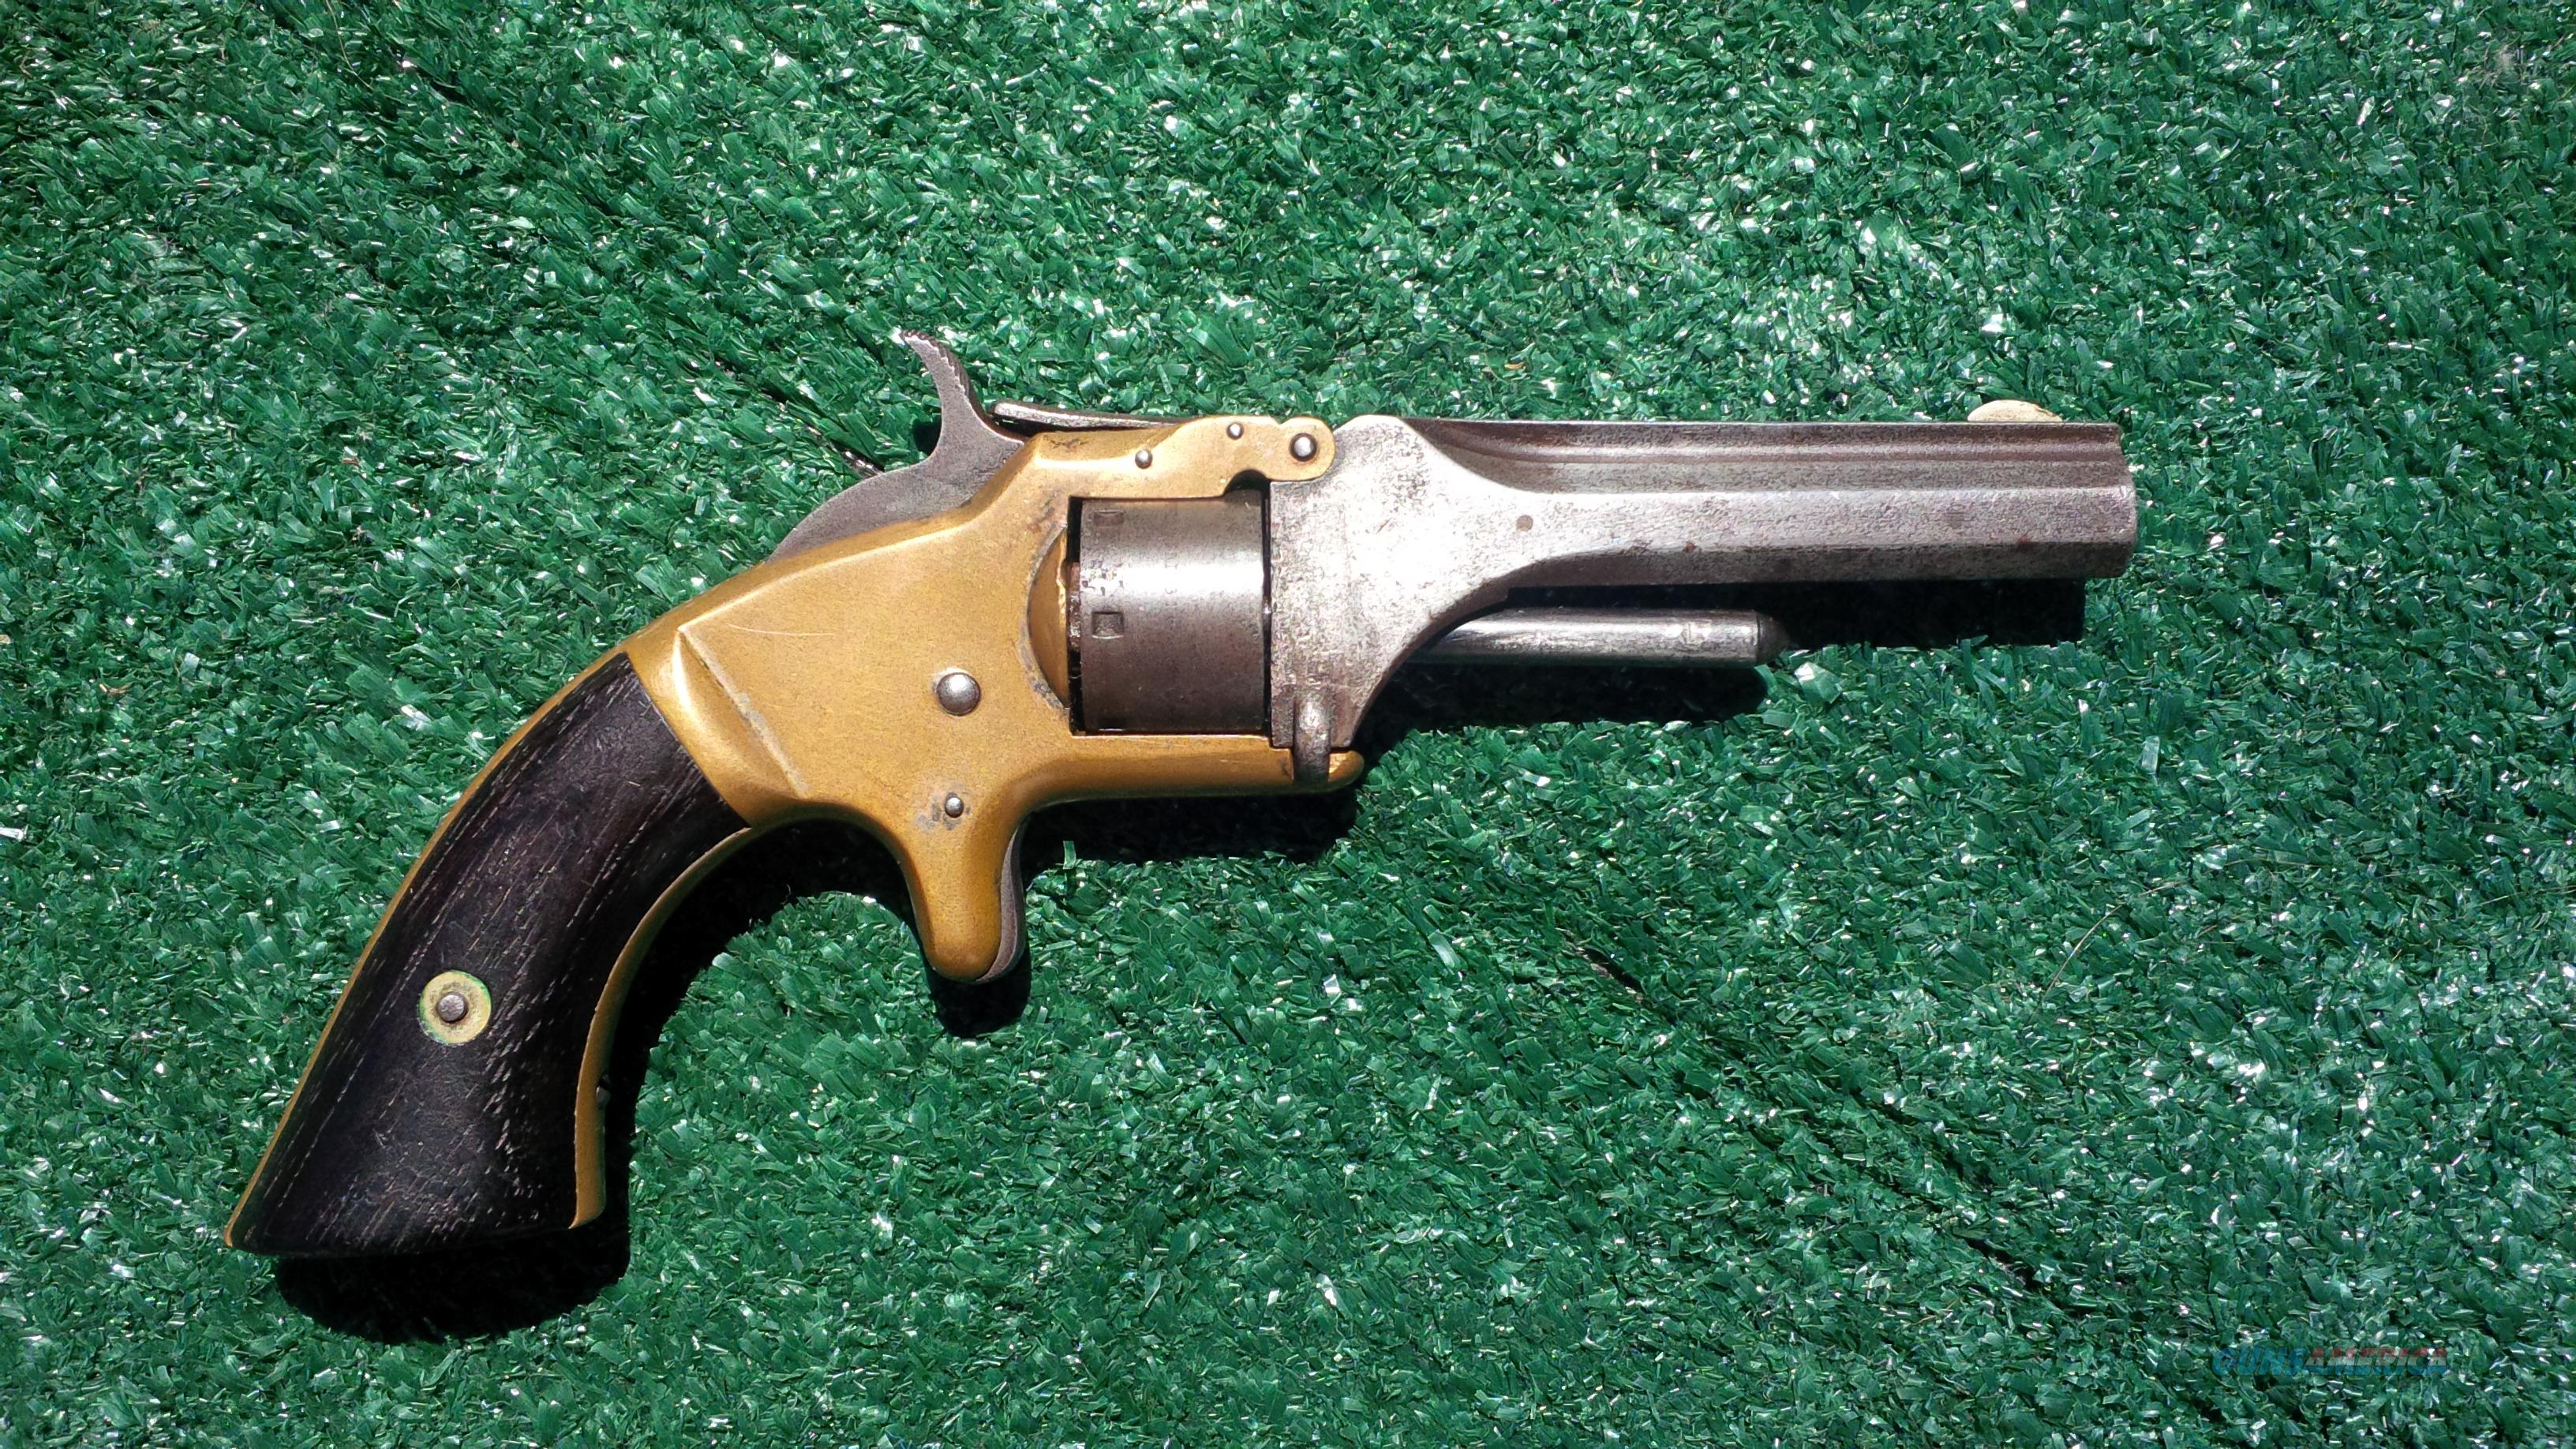 Smith & Wesson #1 Model .22 short (black powder only) Revolver PRICE REDUCED!!! Was $350.00 Now $265.00  Guns > Pistols > Smith & Wesson Revolvers > Pre-1899